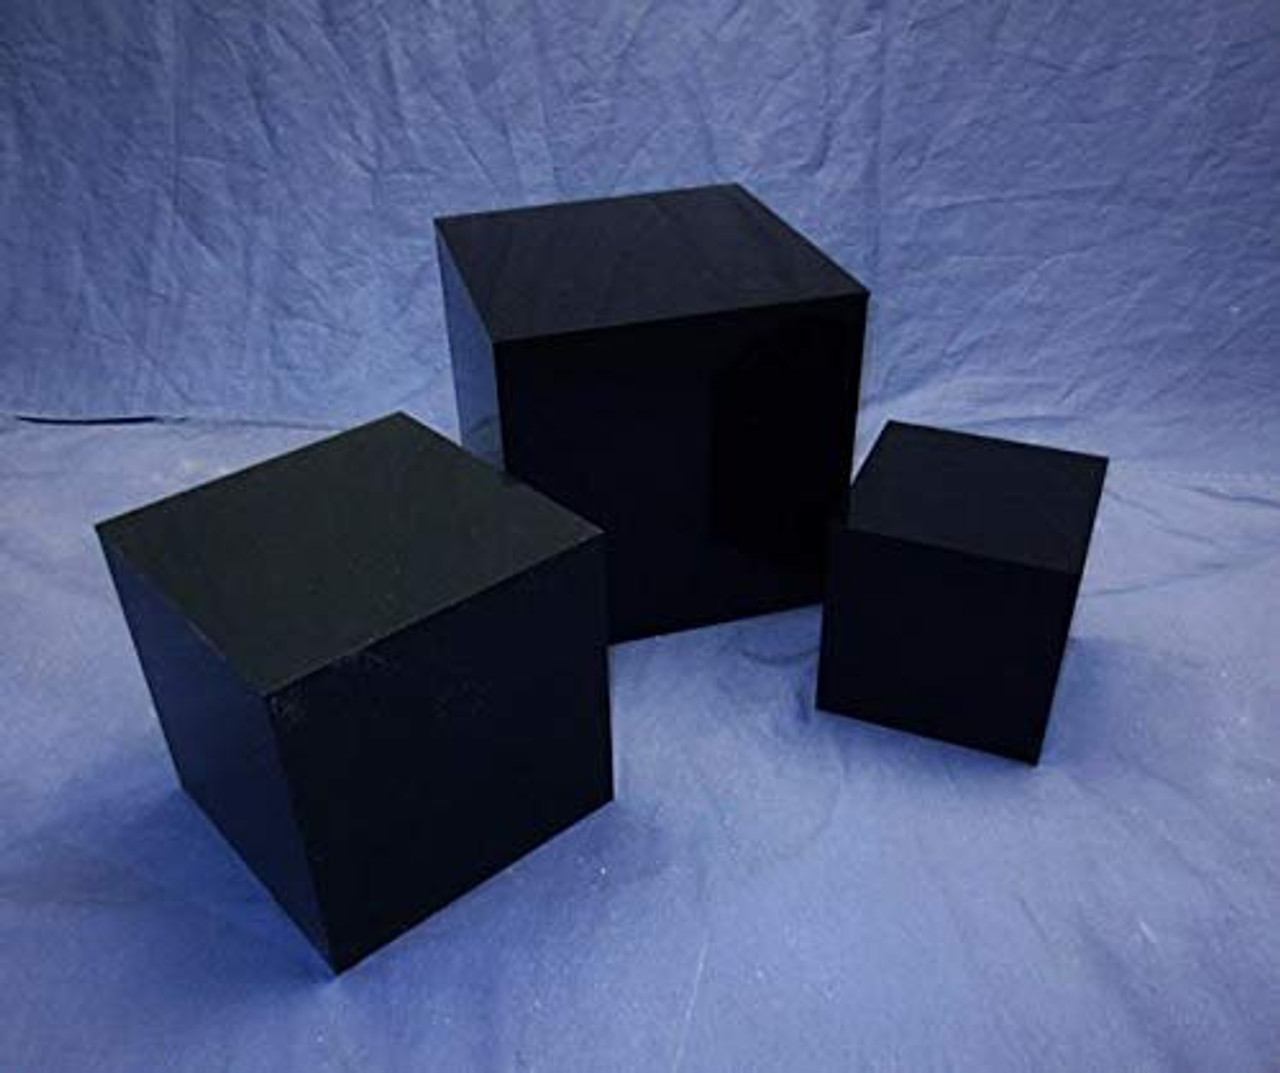 Clear Stands 3 Piece Square Acrylic Cube Set, Black